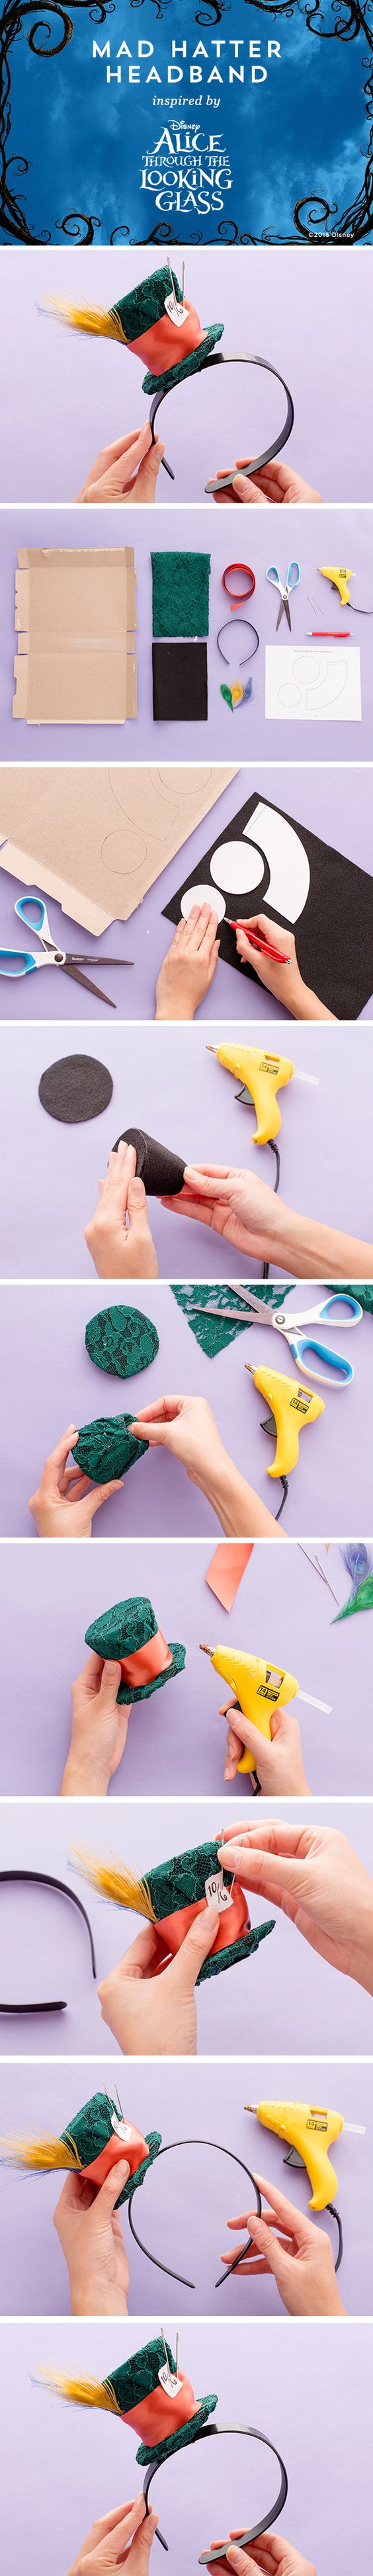 DIY Mad Hatter Headband.